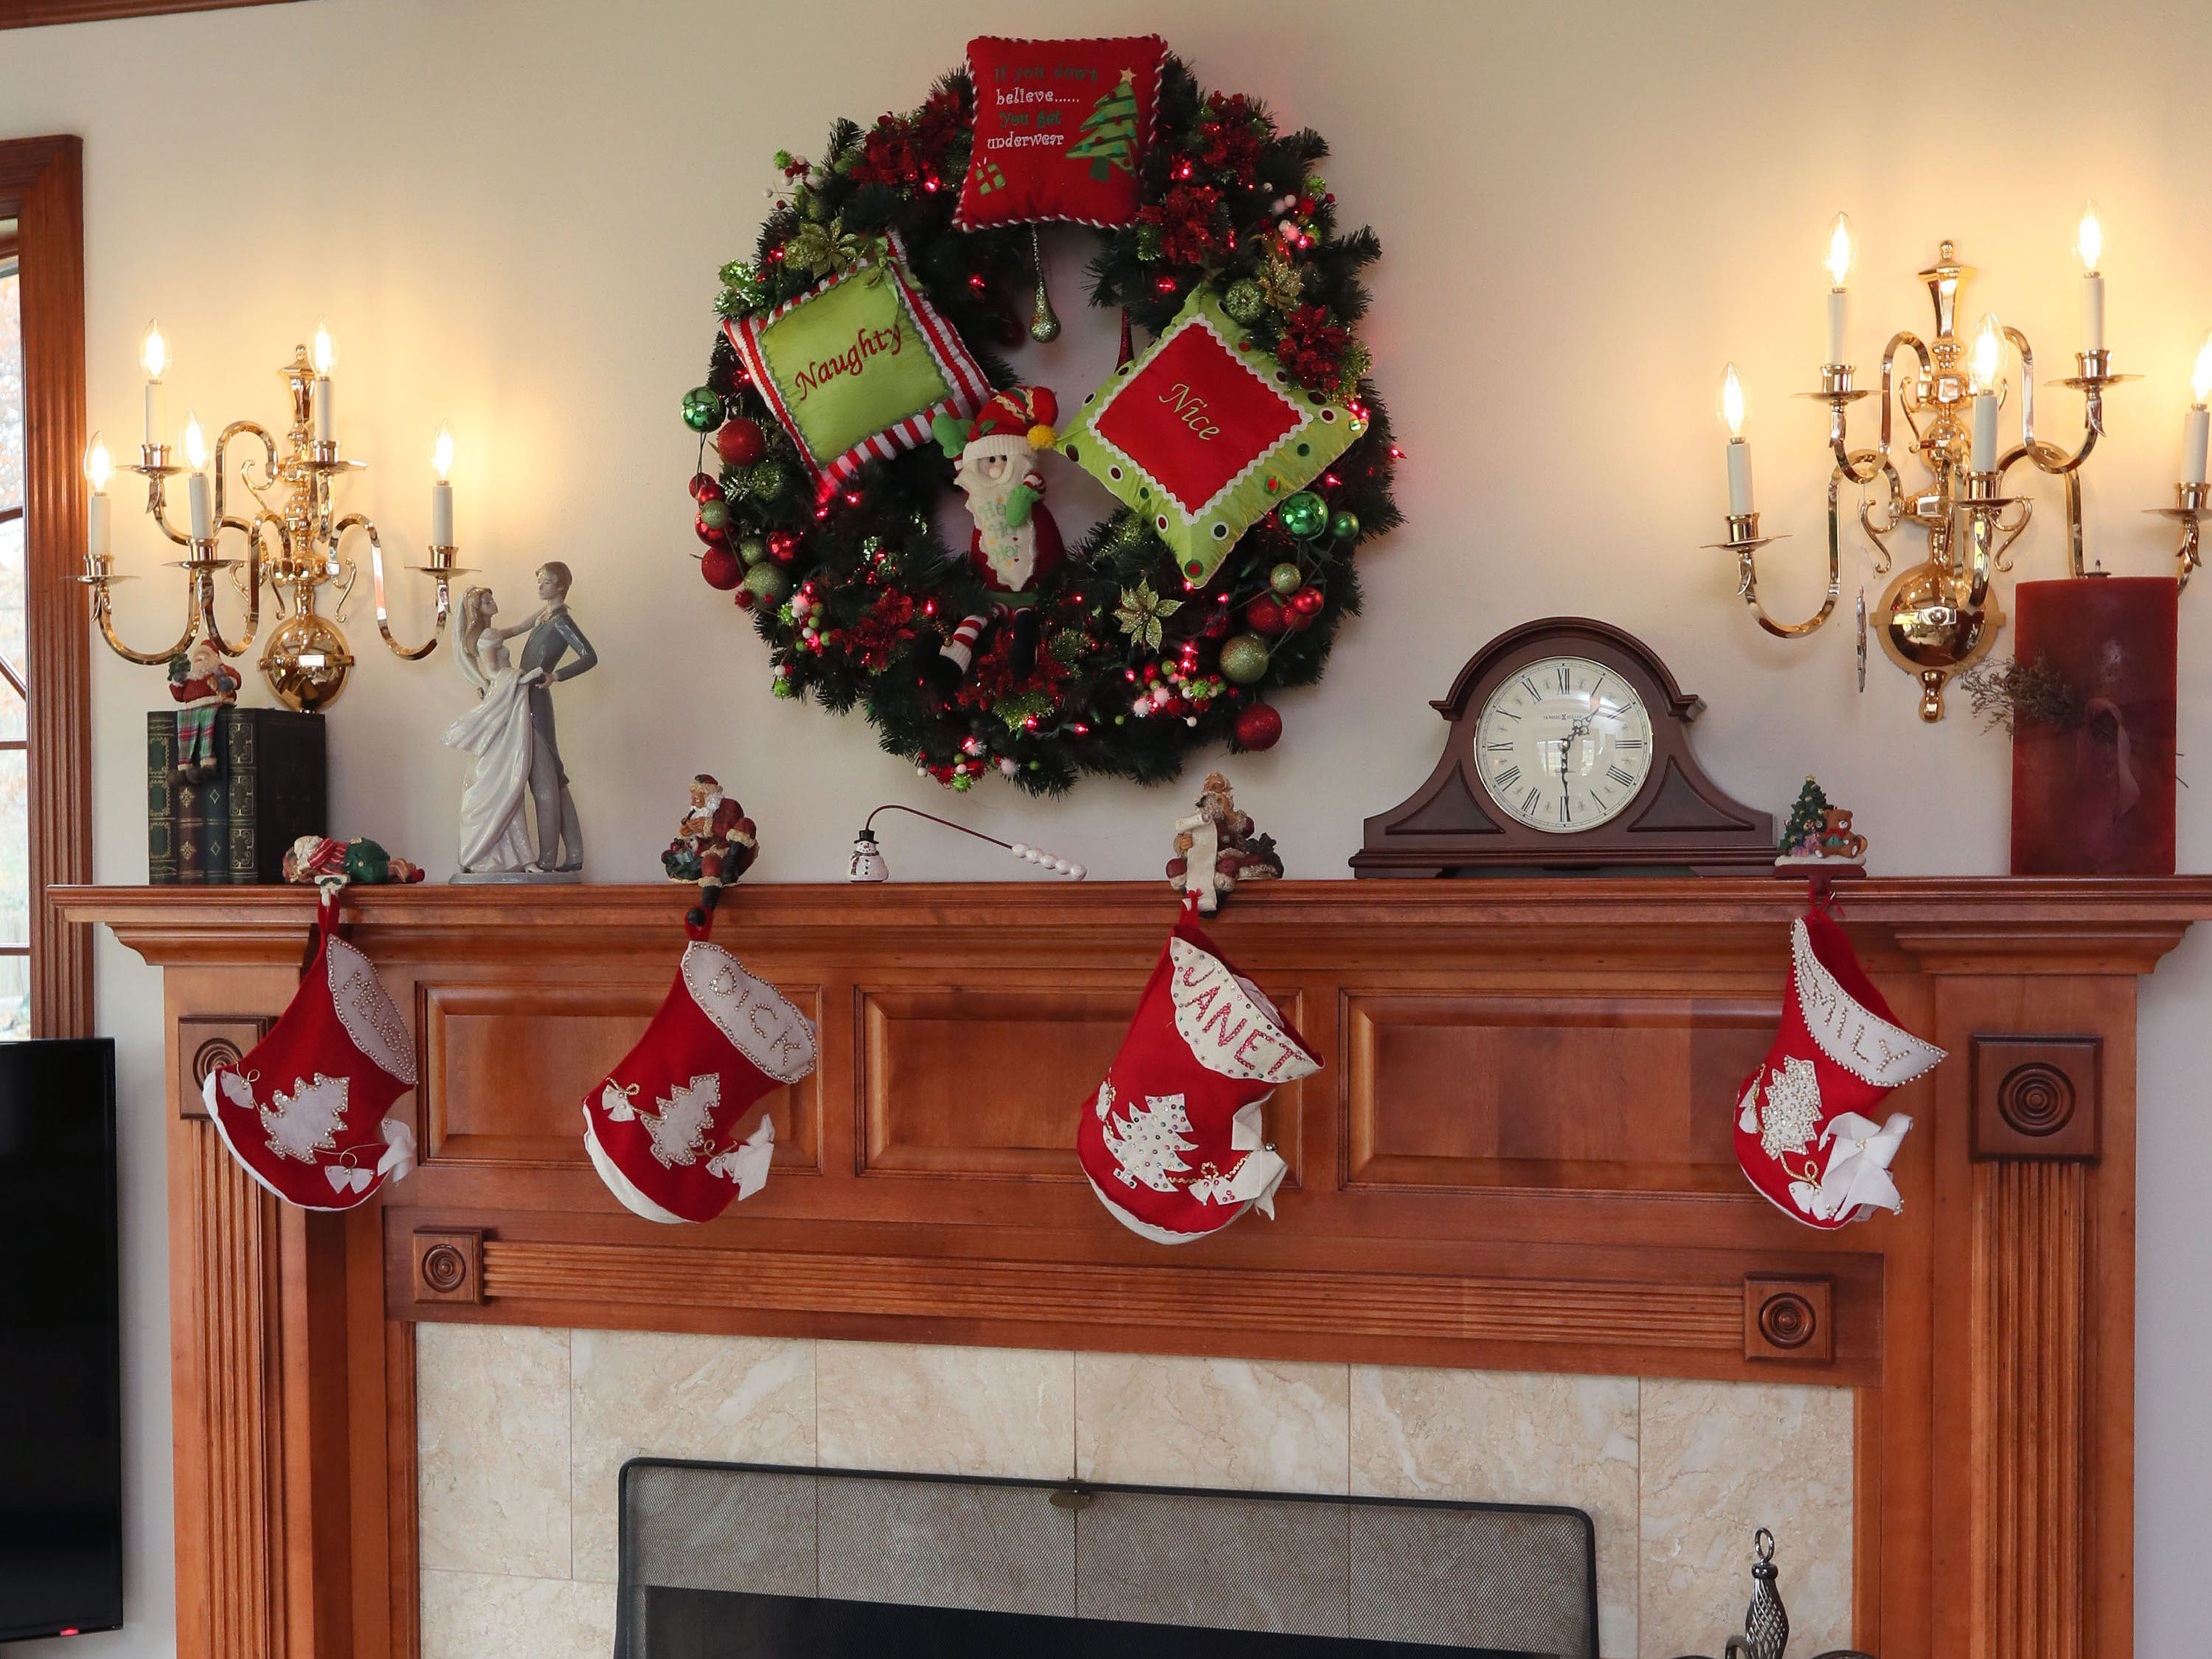 The family room fireplace is simply decorated with a large wreath and family members' stockings.